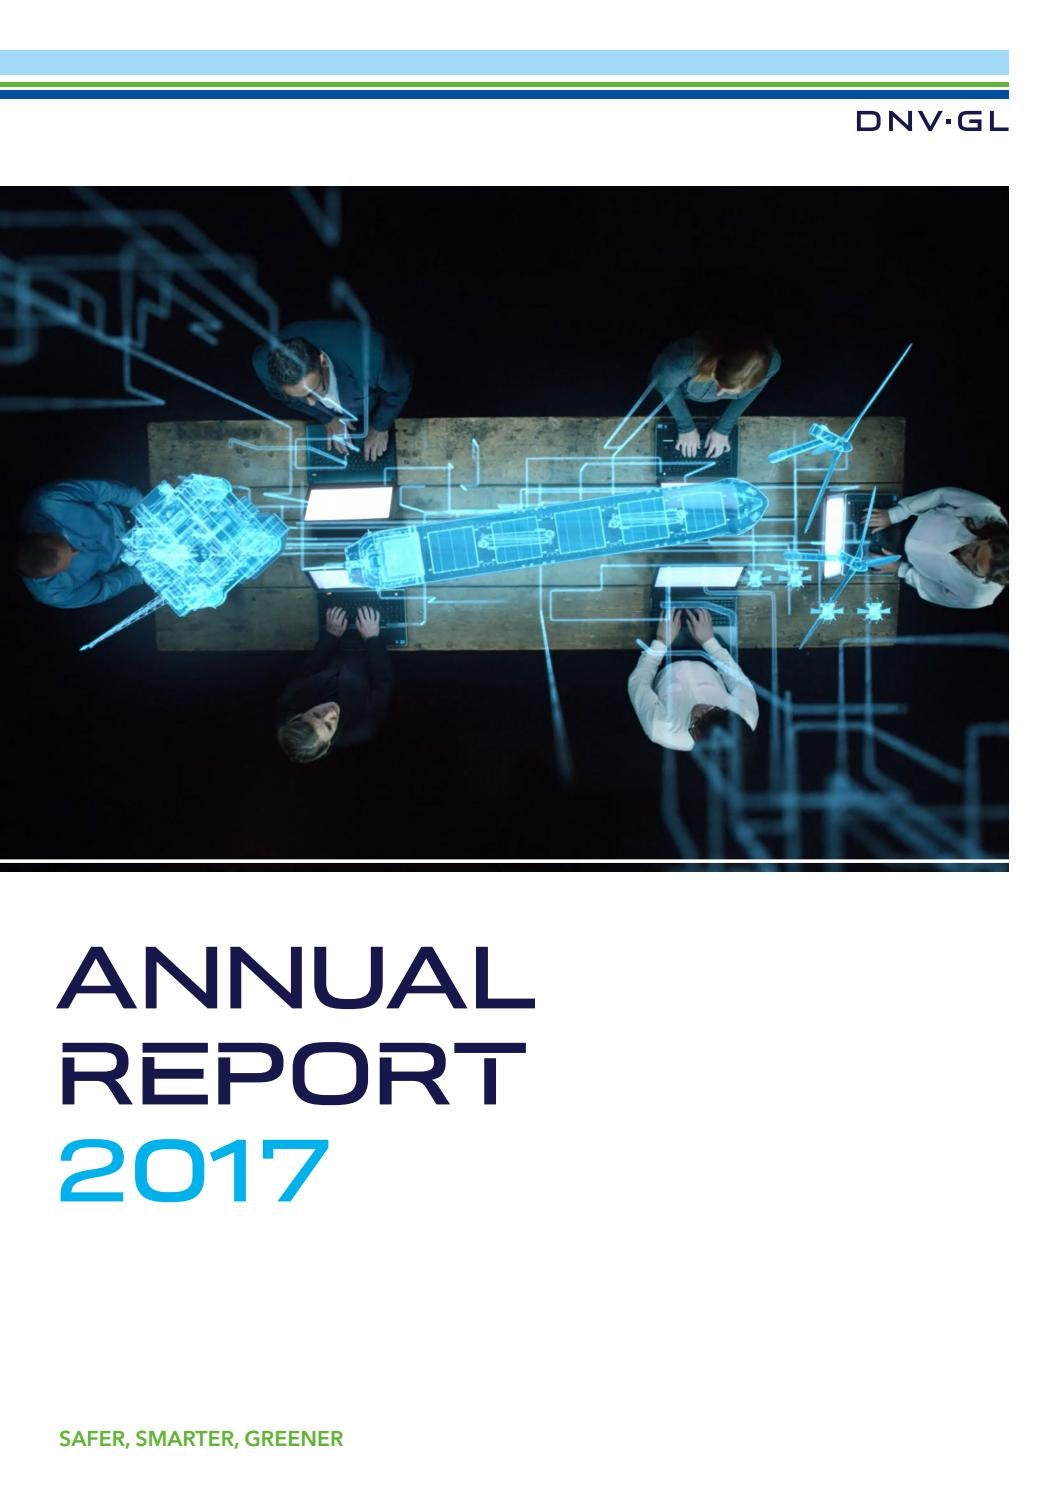 Abp 656 dnv gl annual report 2017dnv gl - issuu